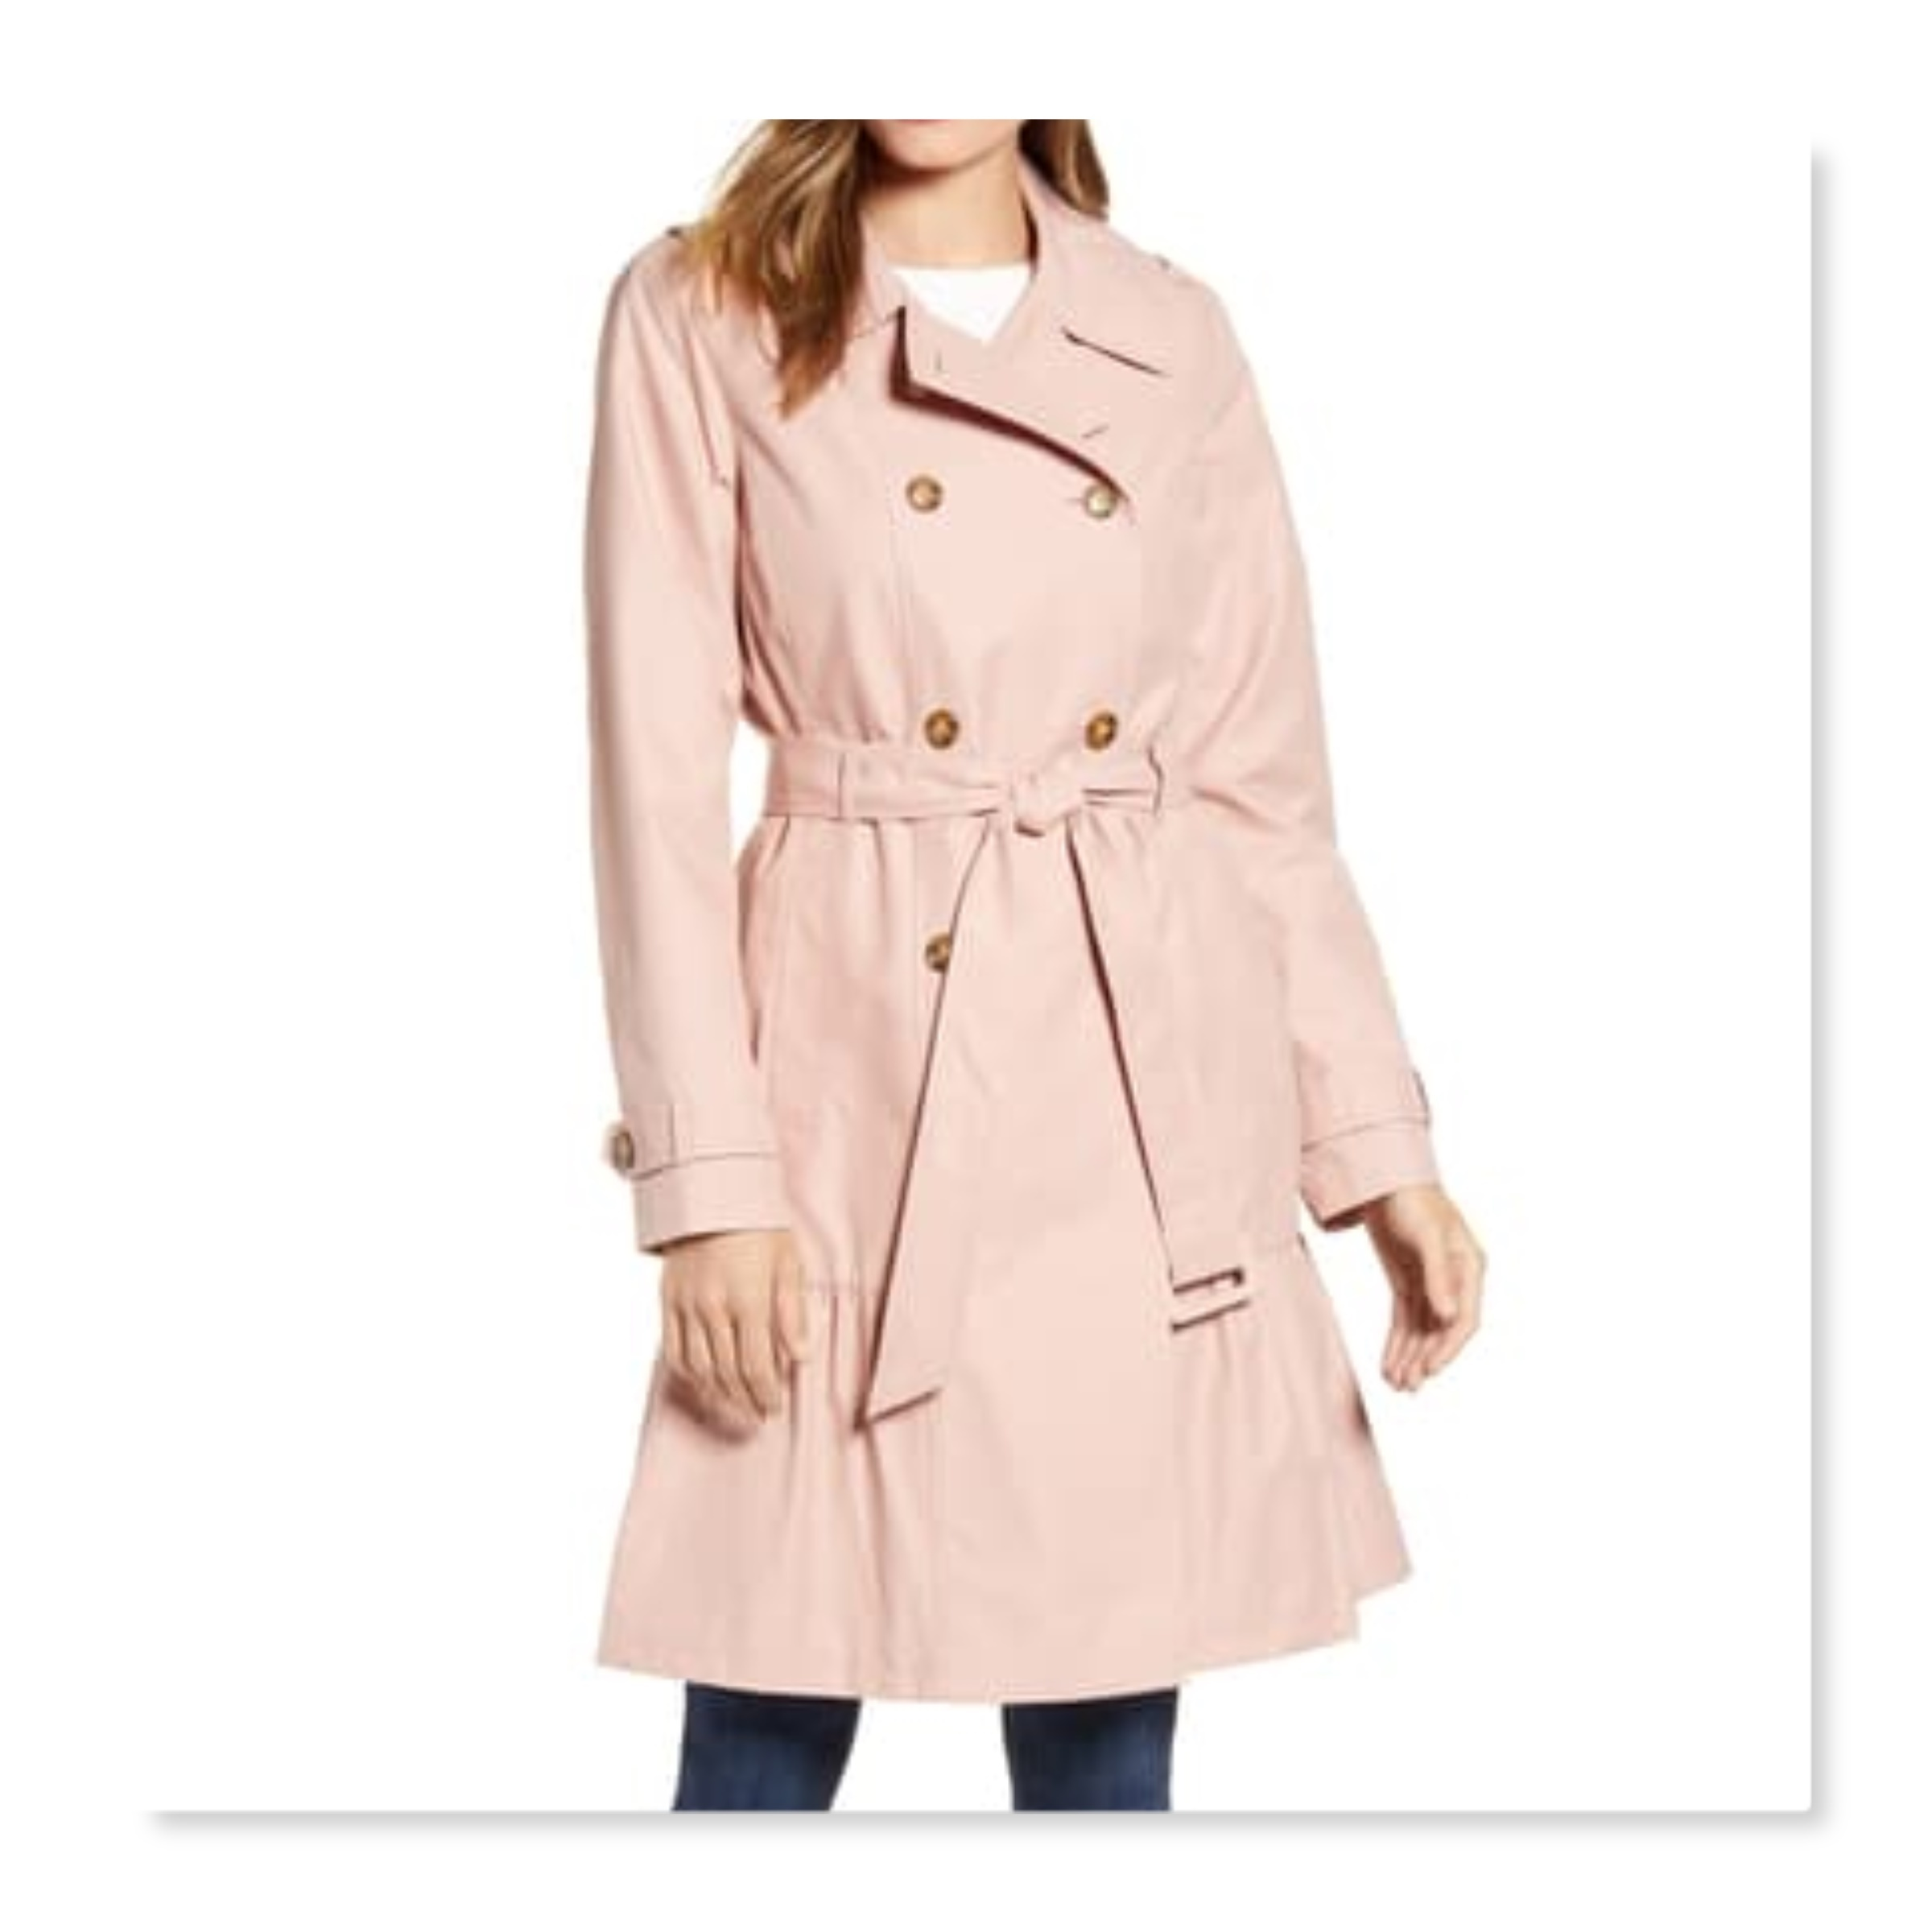 shop kate spade new york clothing